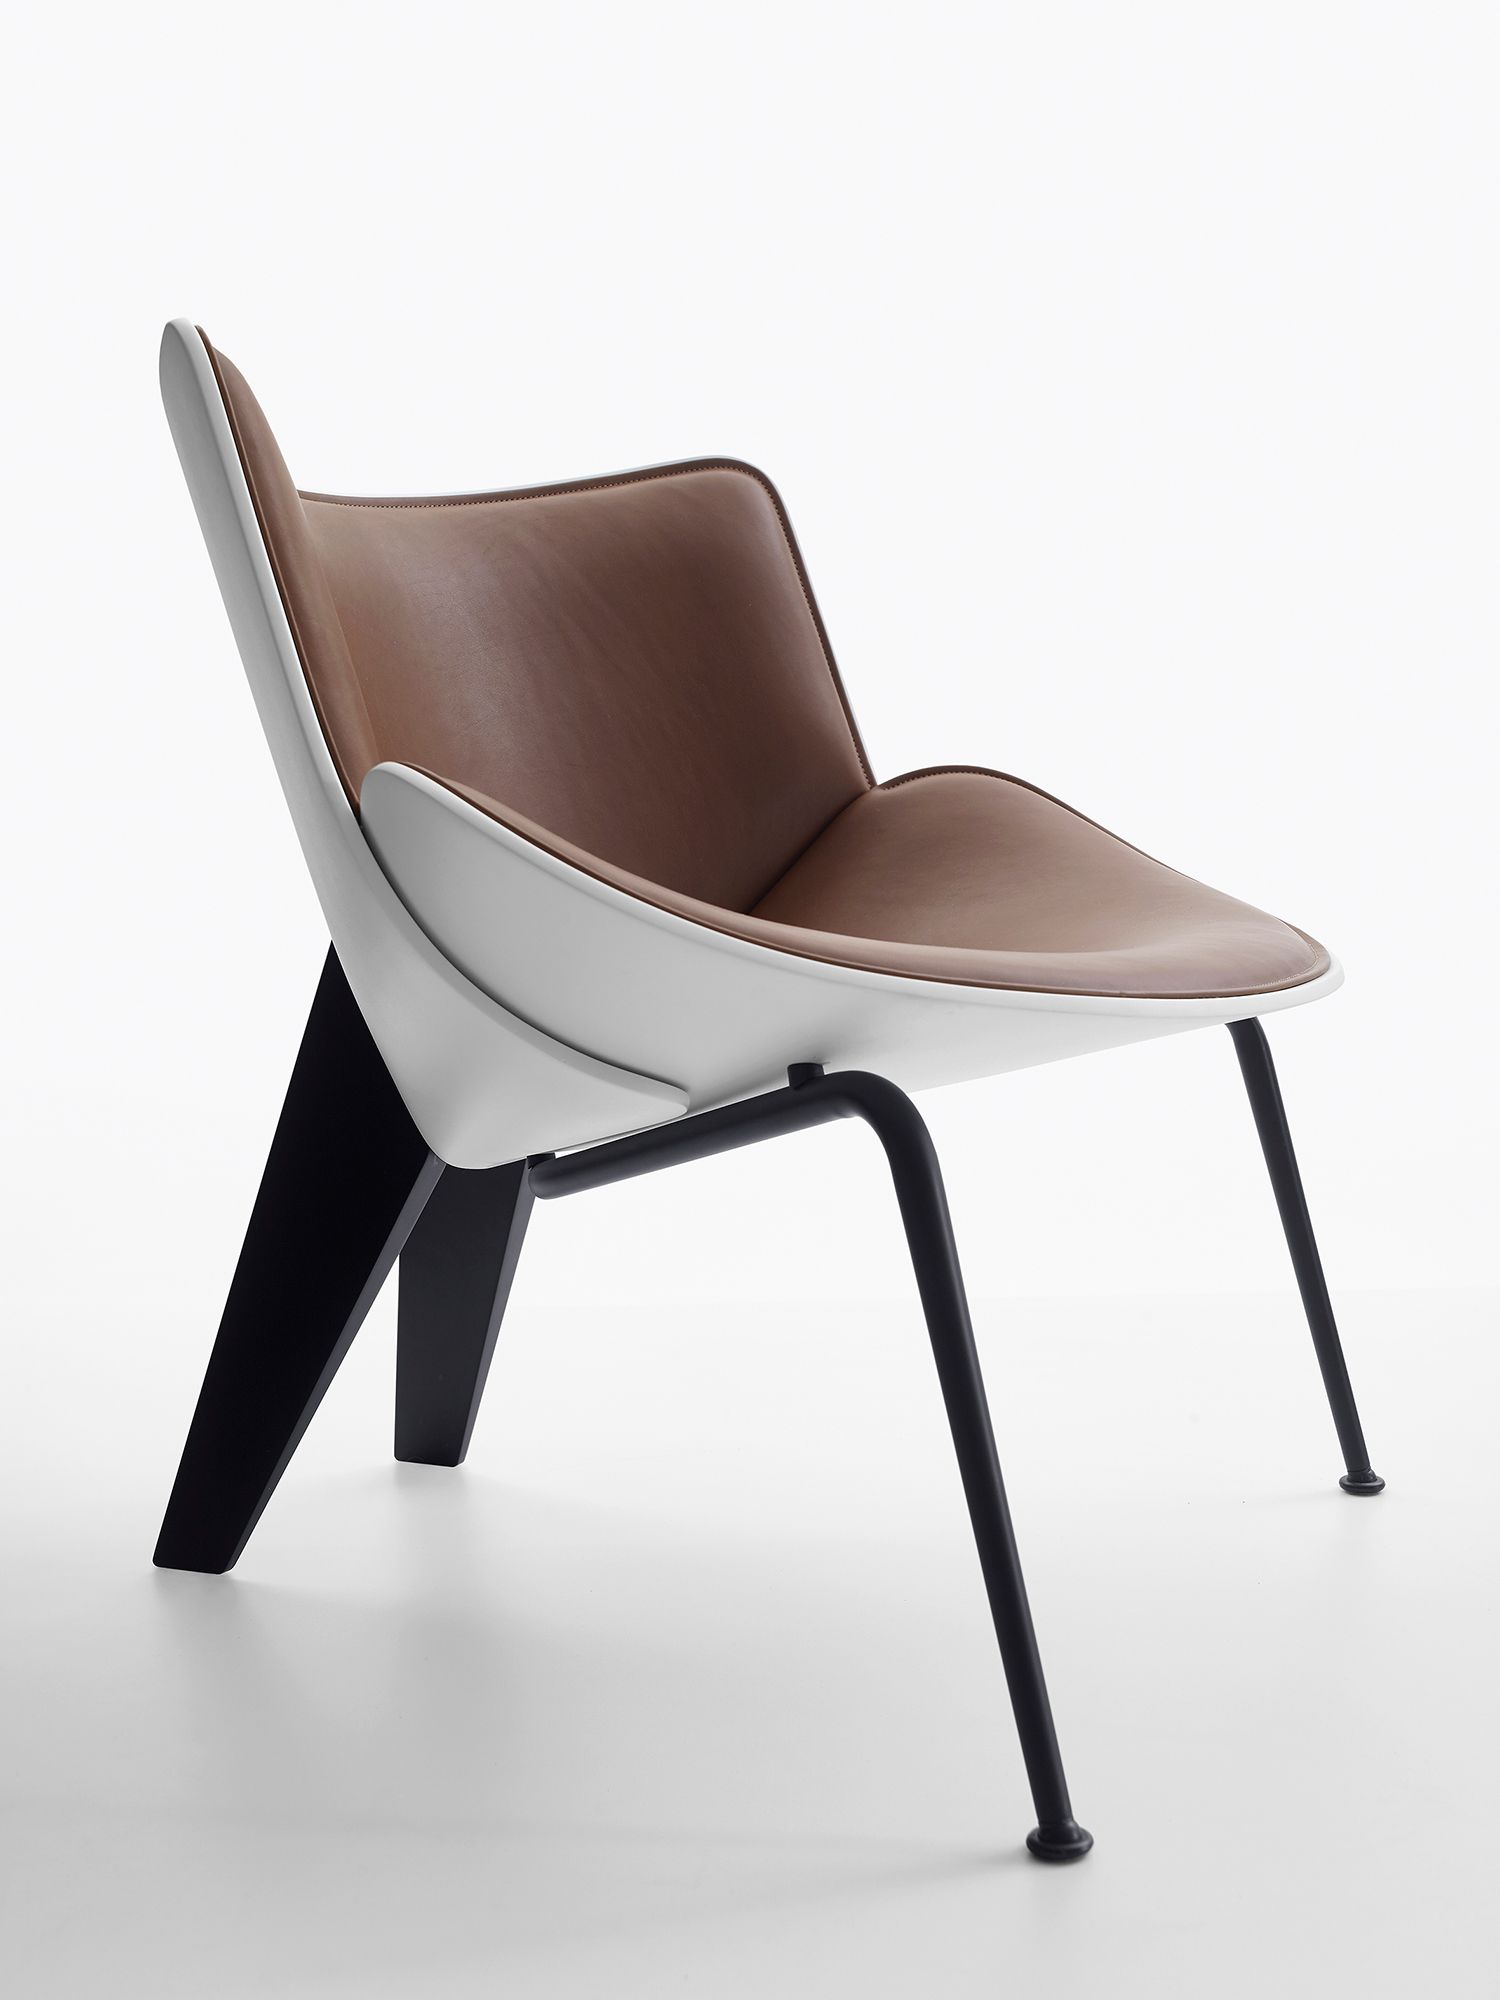 Doshi Levien Is An Internationally Acclaimed Design Studio Founded By  Designers Nipa Doshi And Jonathan Levien.